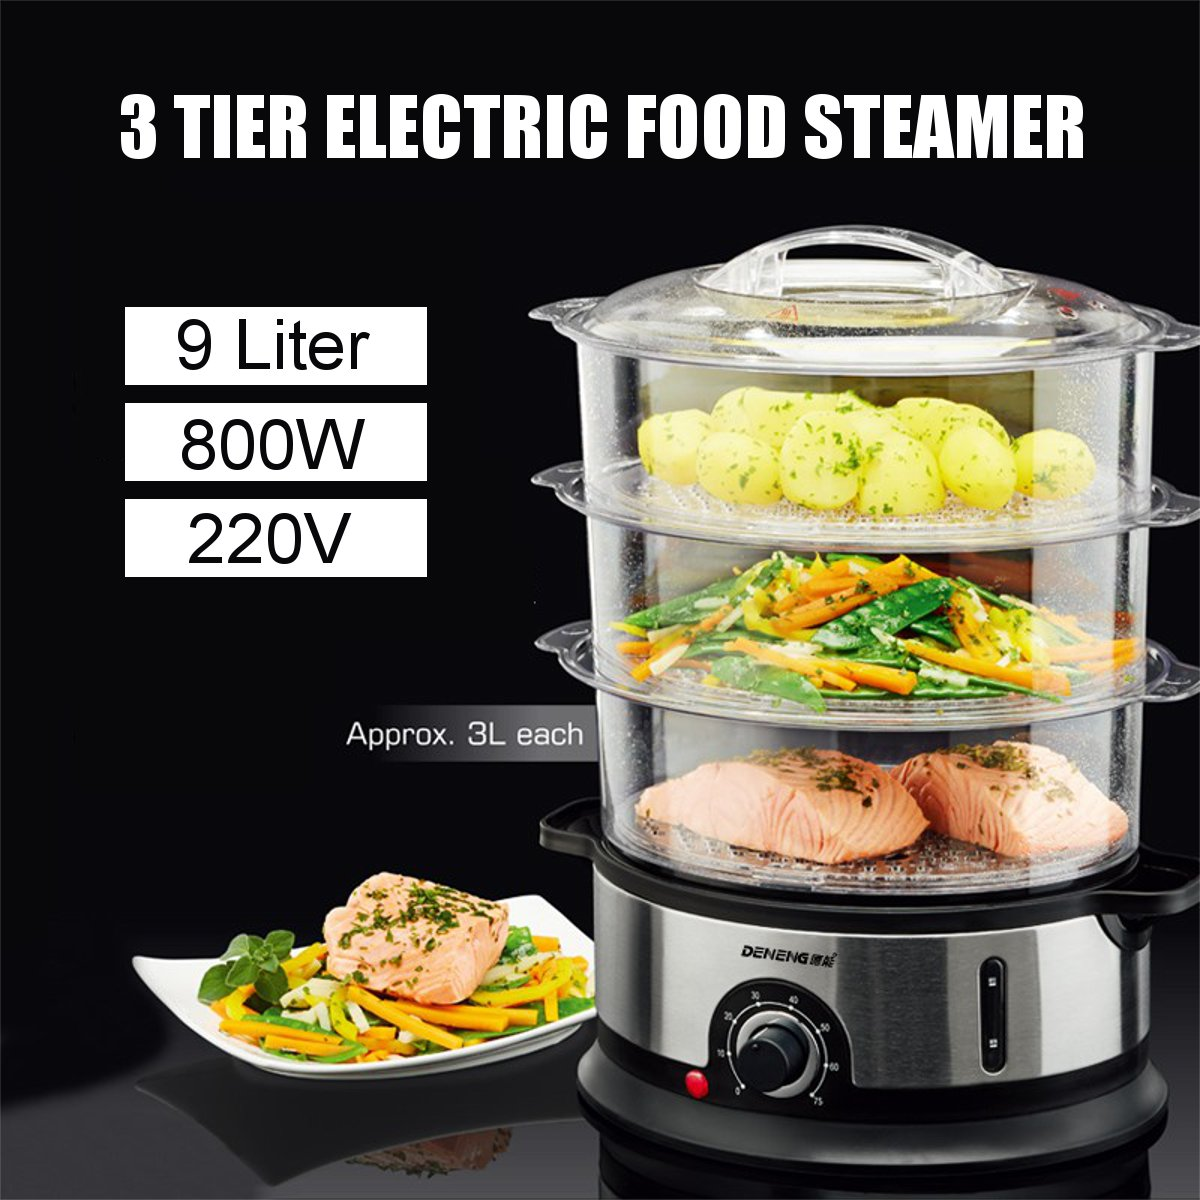 3 Tiers Electric Food Steamer 9L Timing Home Food Steamer Kitchen Fish Cooking Machine 220V 800W Vegetable Pot Cooker Tools